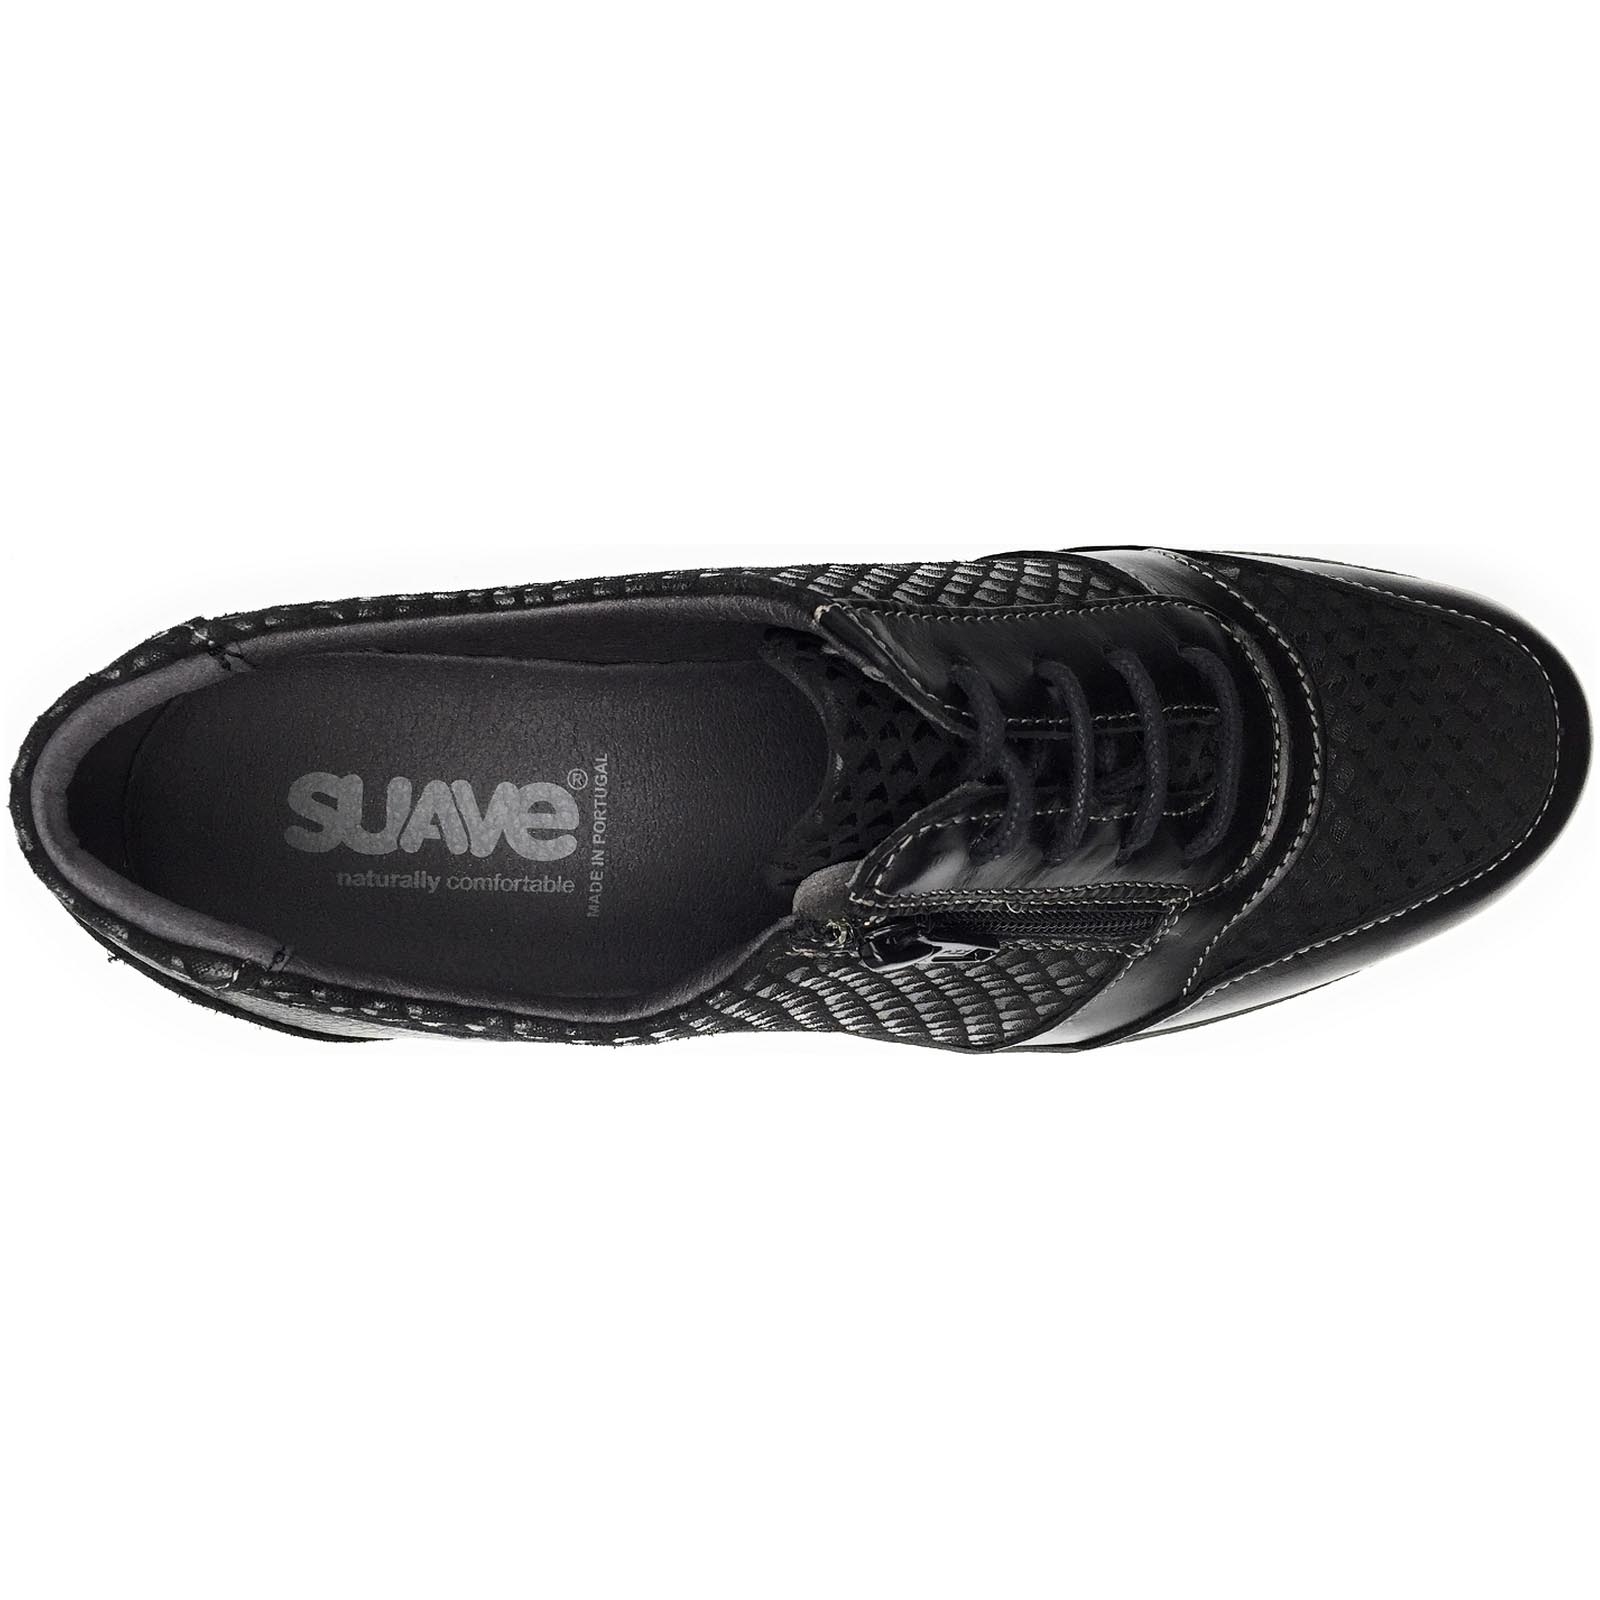 Suave baskets mode 7518 noir8054201_5